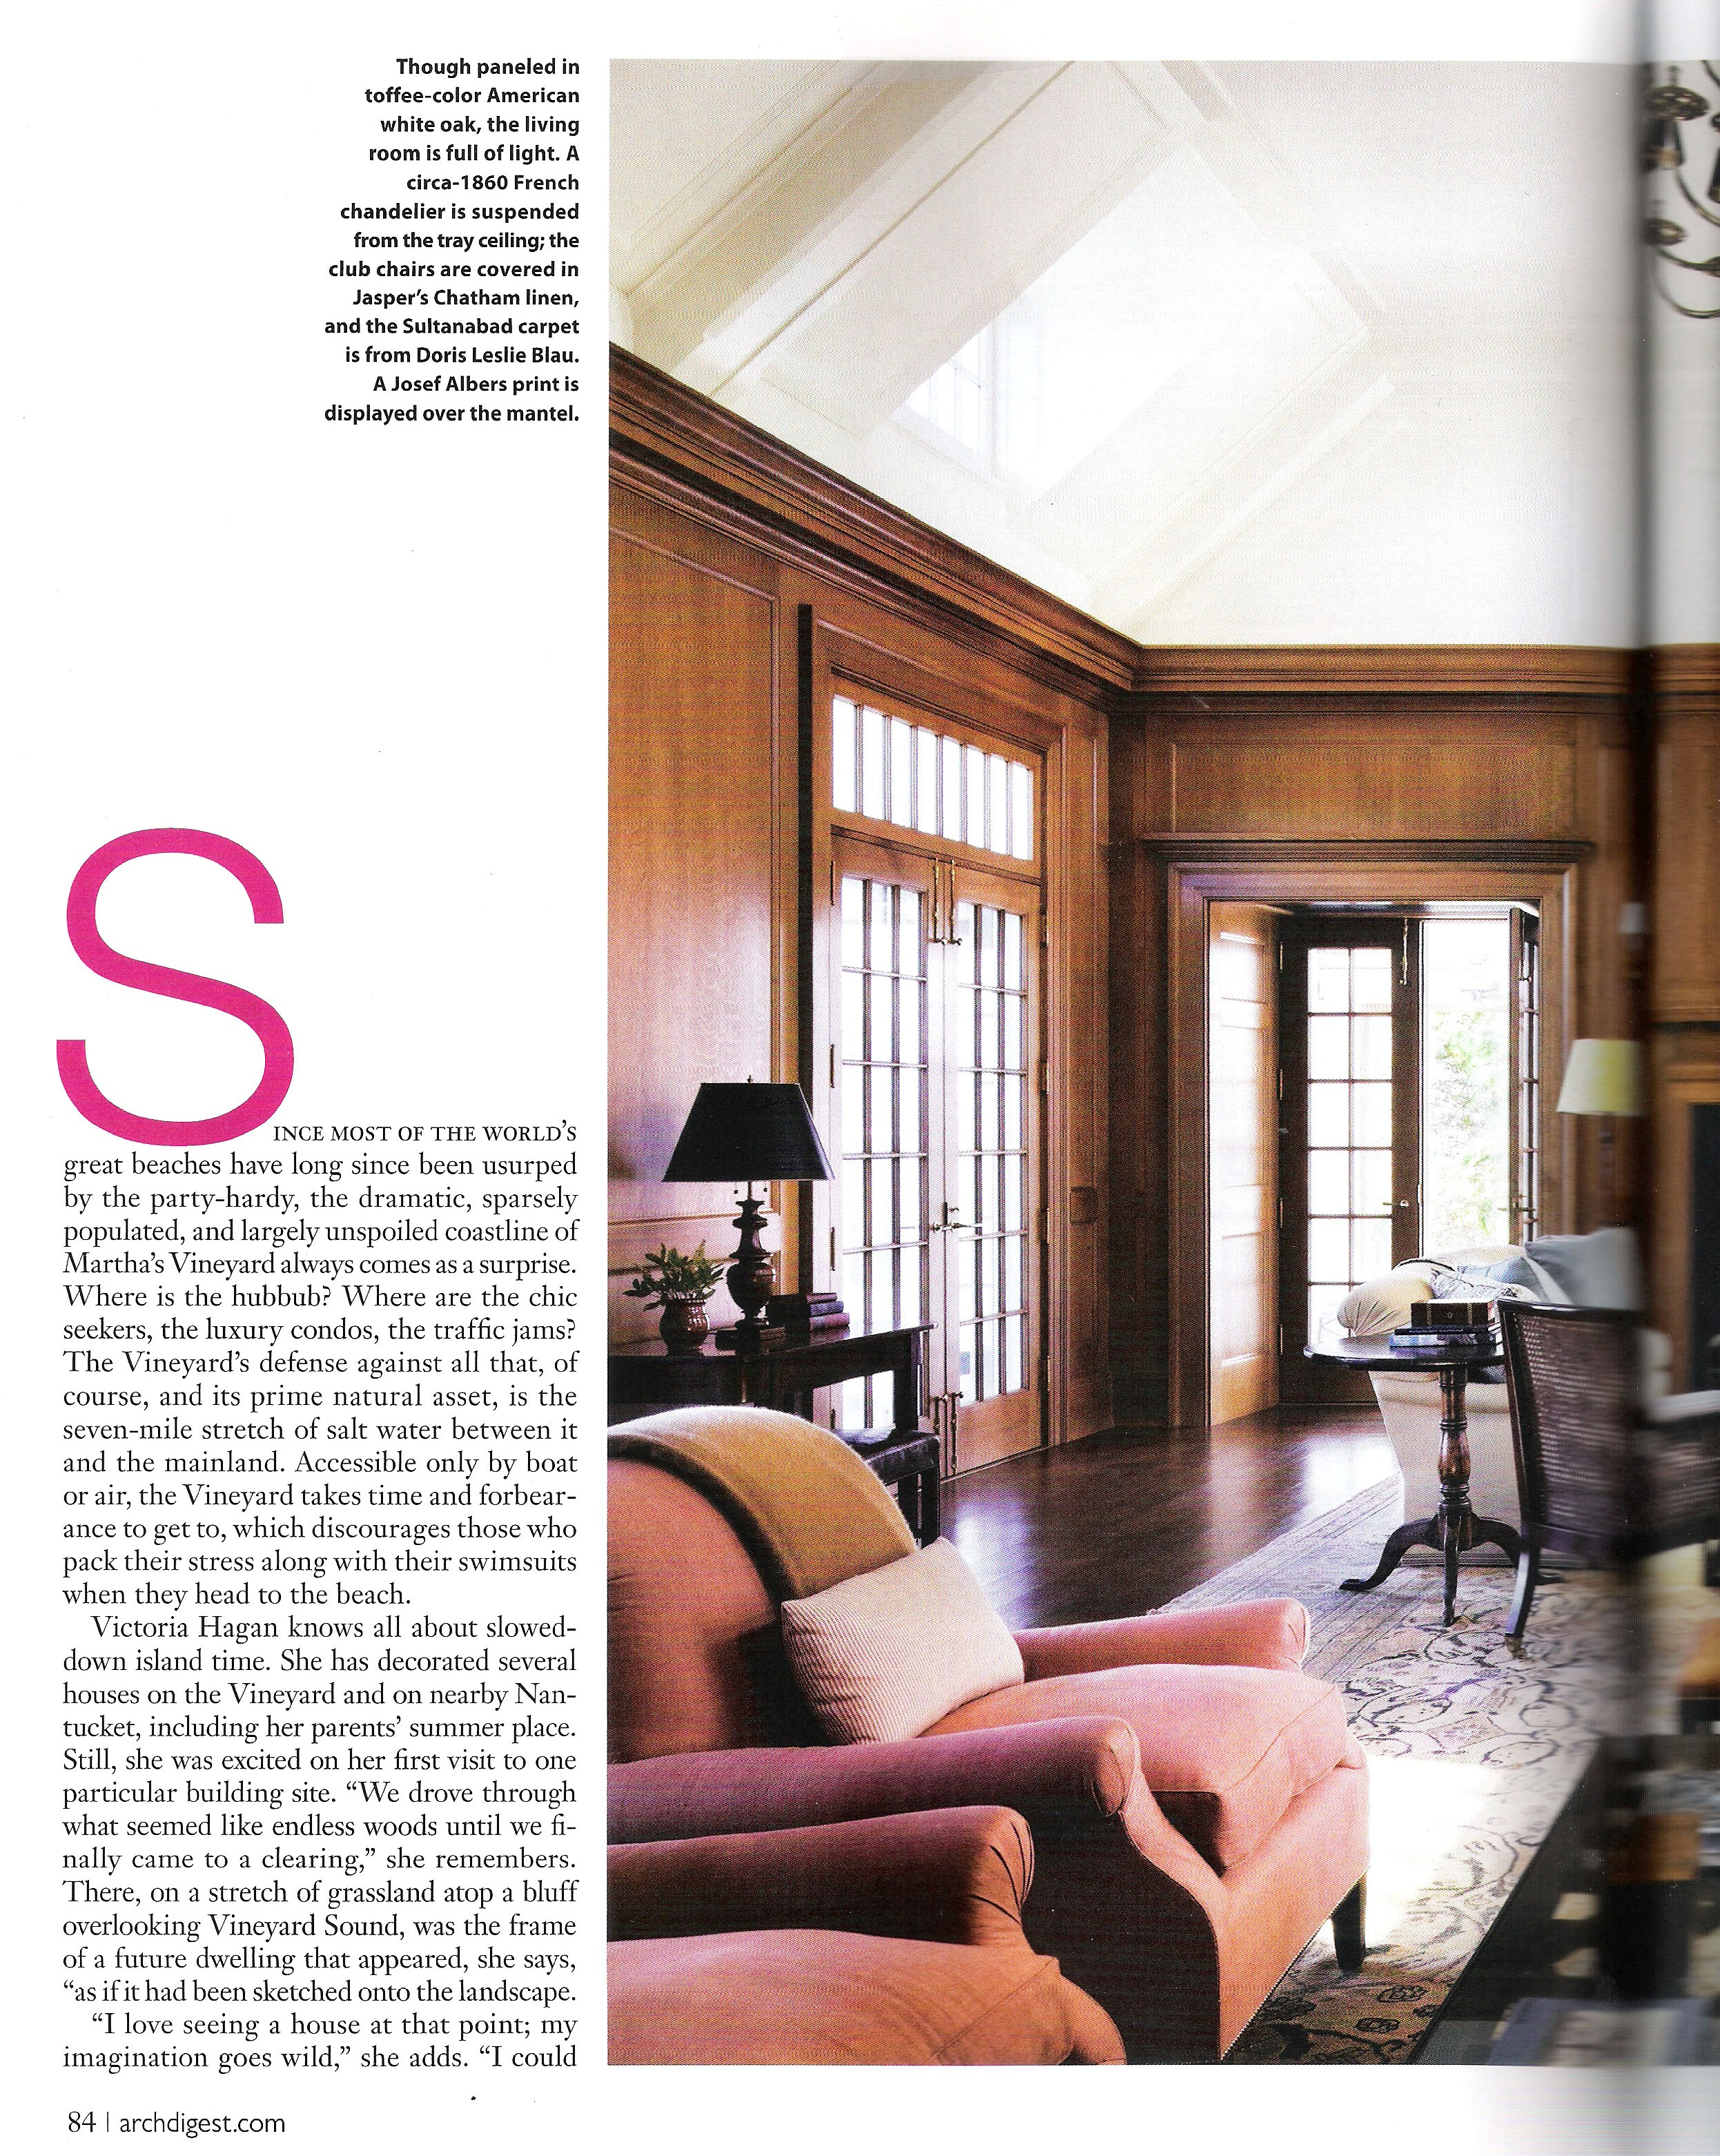 Architectural Digest, February 2011